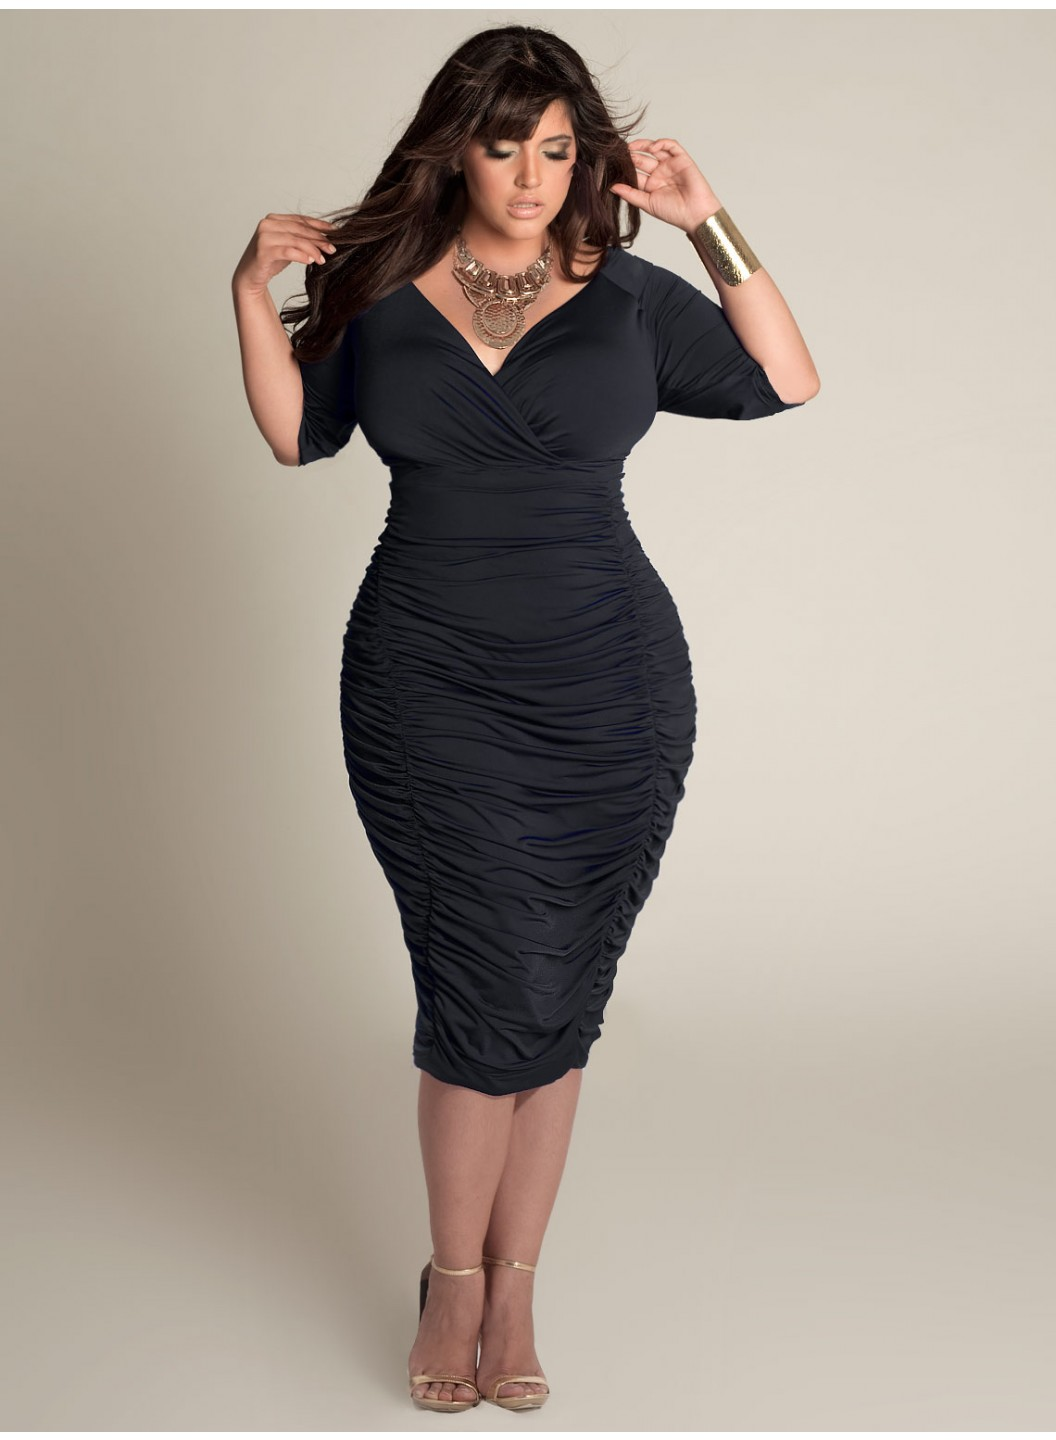 Womens Plus Size Clothing Sexy 63